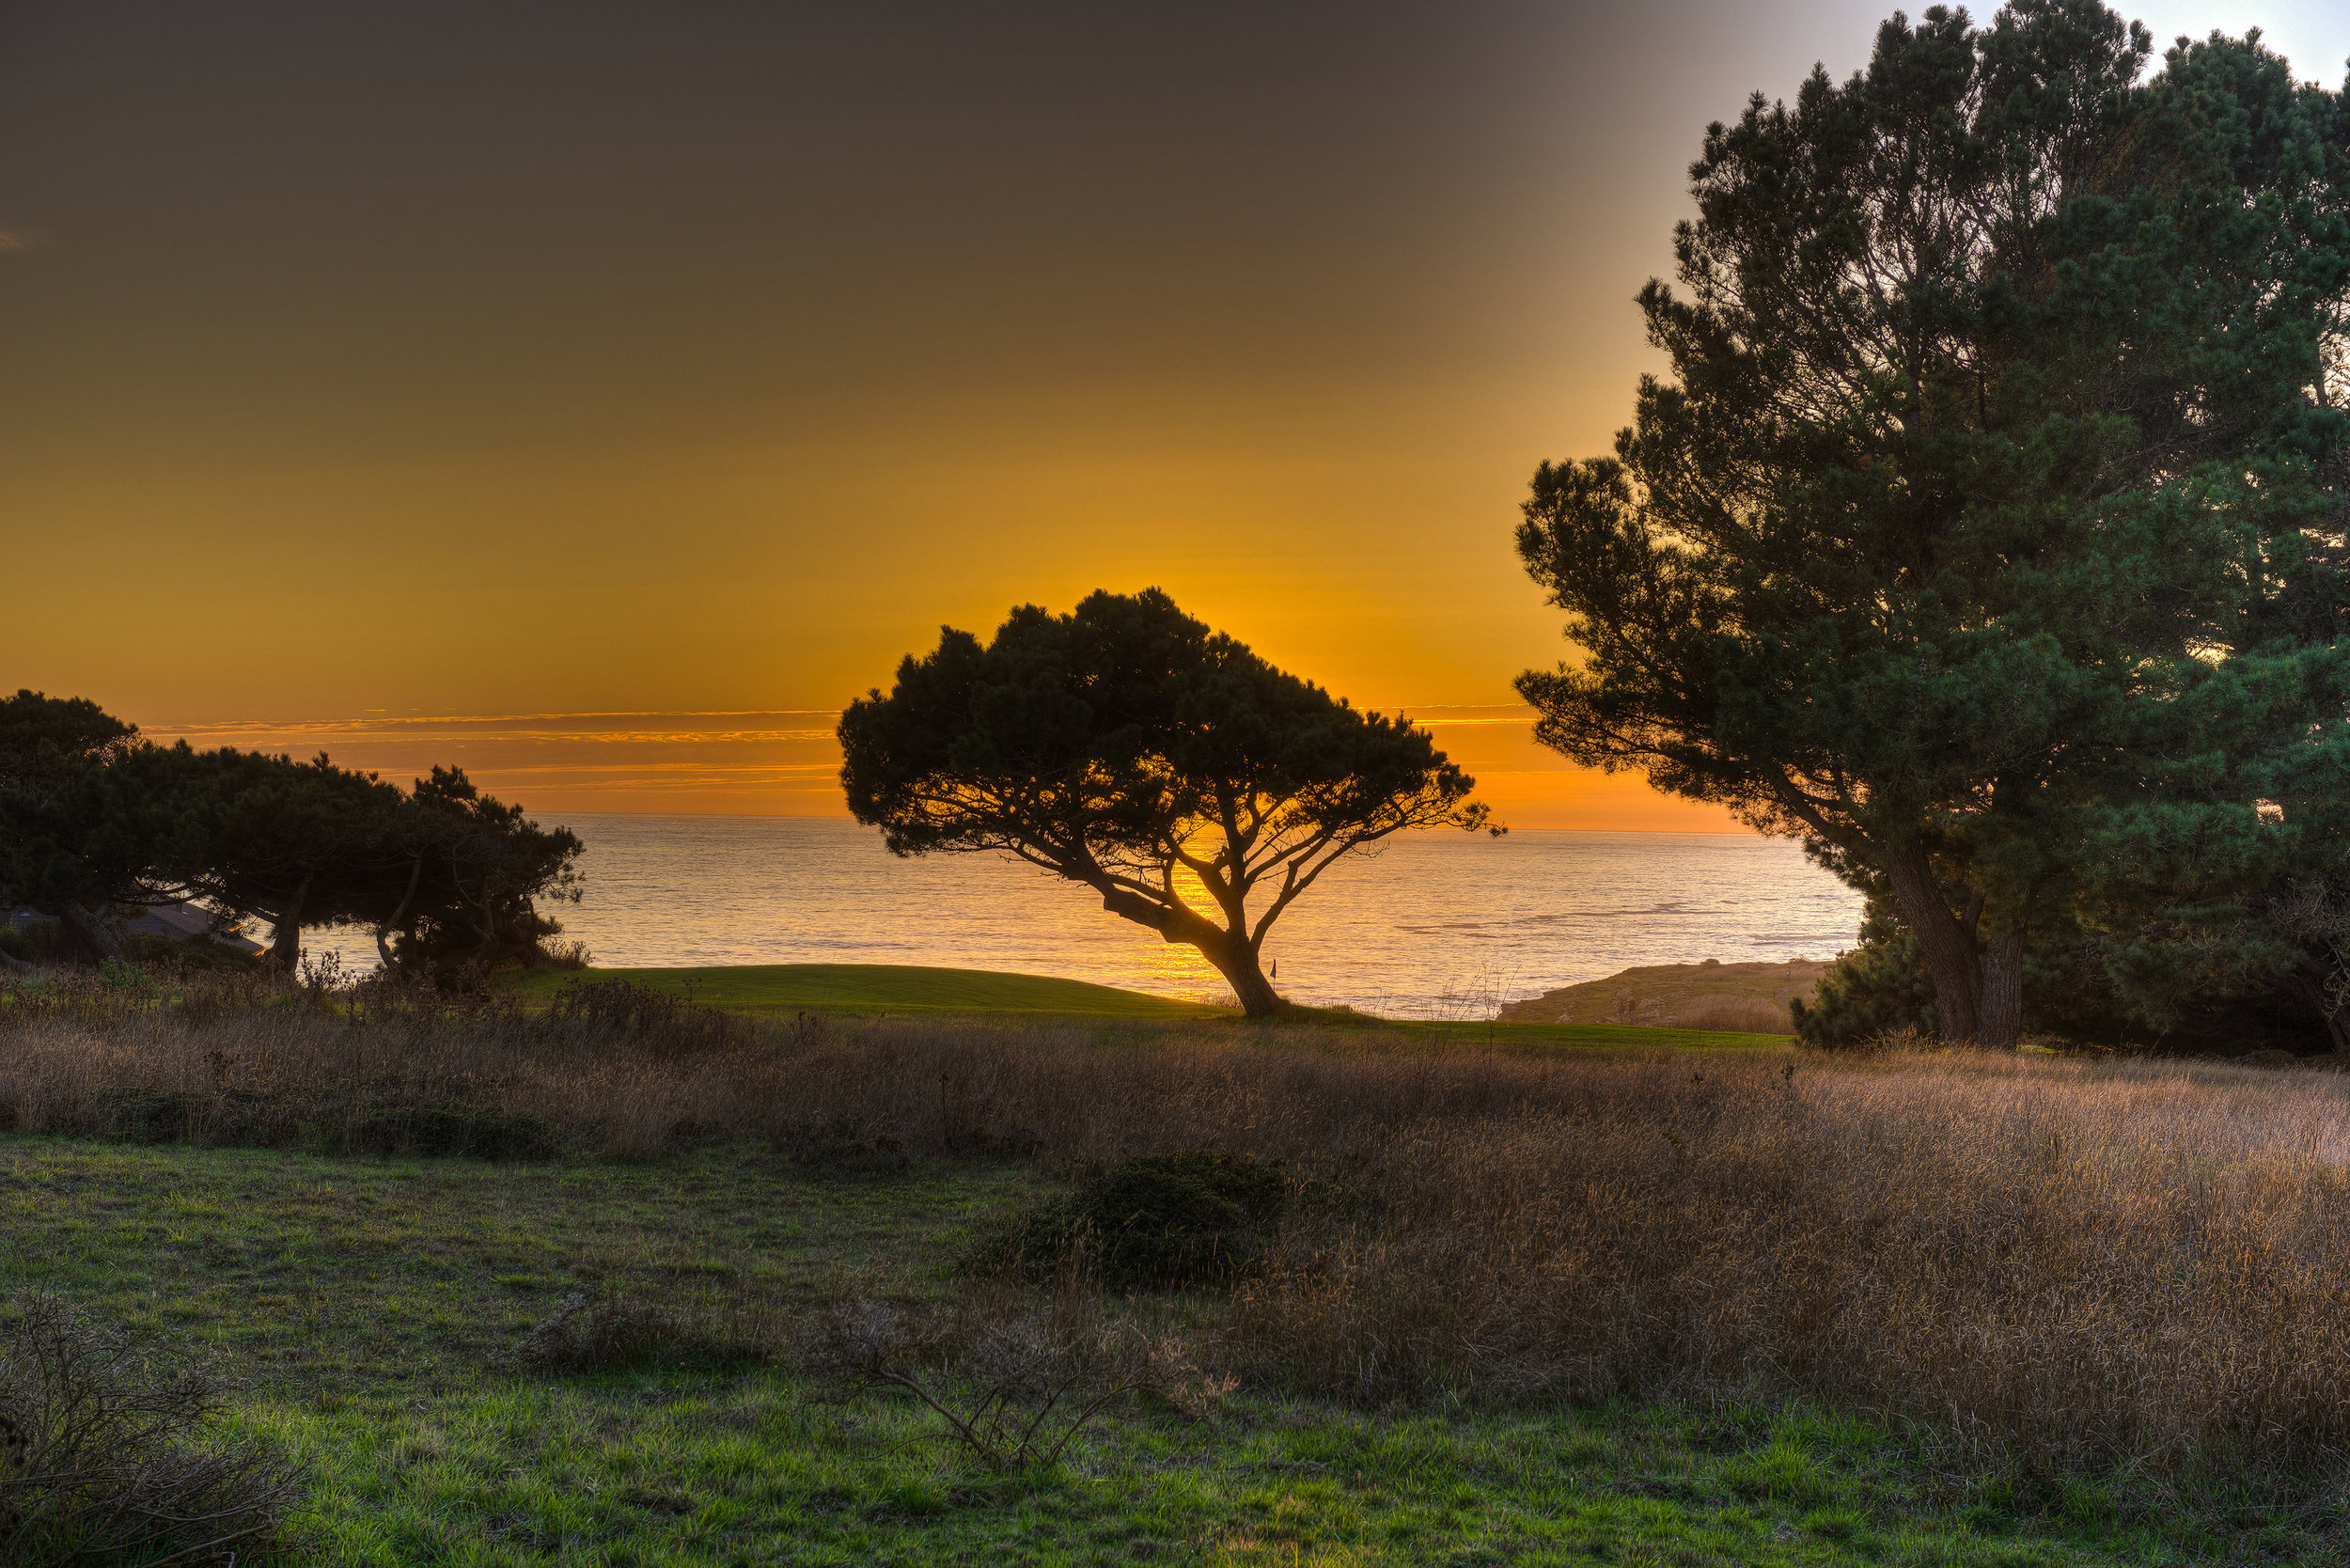 sunset and the tree.jpg